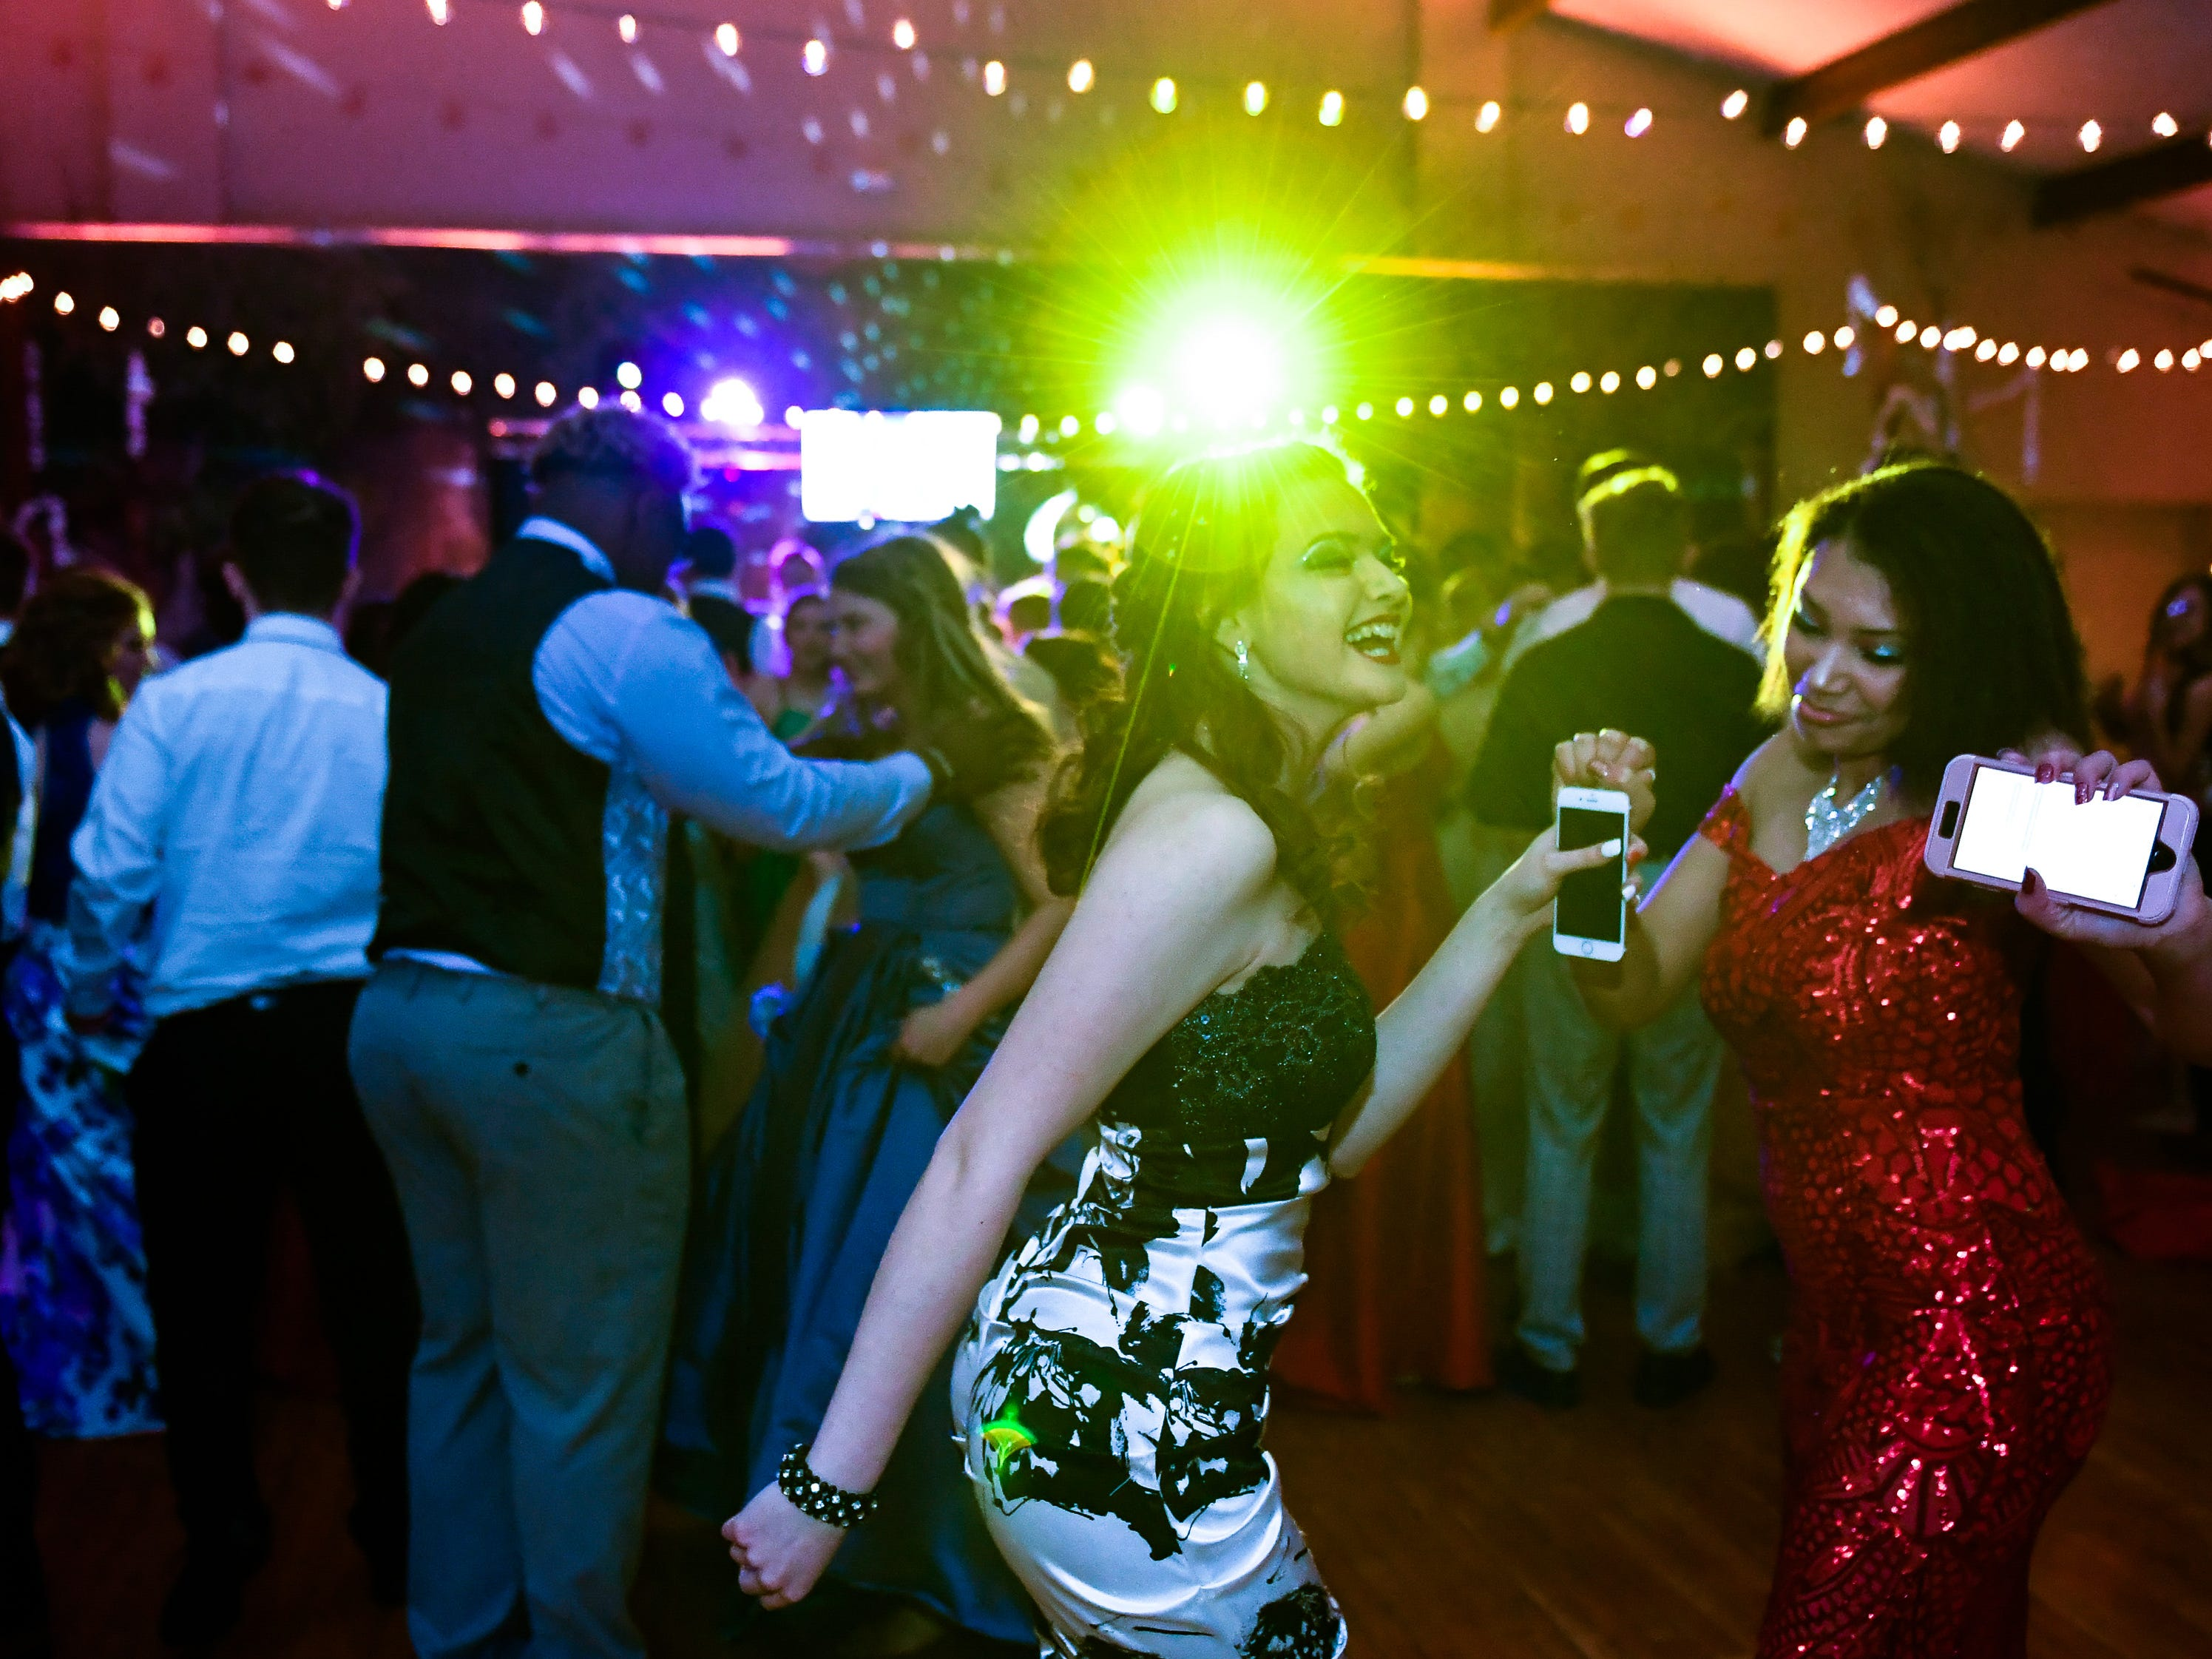 Daylynn Hogan, left, and Ashlyn Miller on the dance floor at the Reitz  High chool Prom held at the Vanderburgh 4-H Center Saturday, April 13, 2019.